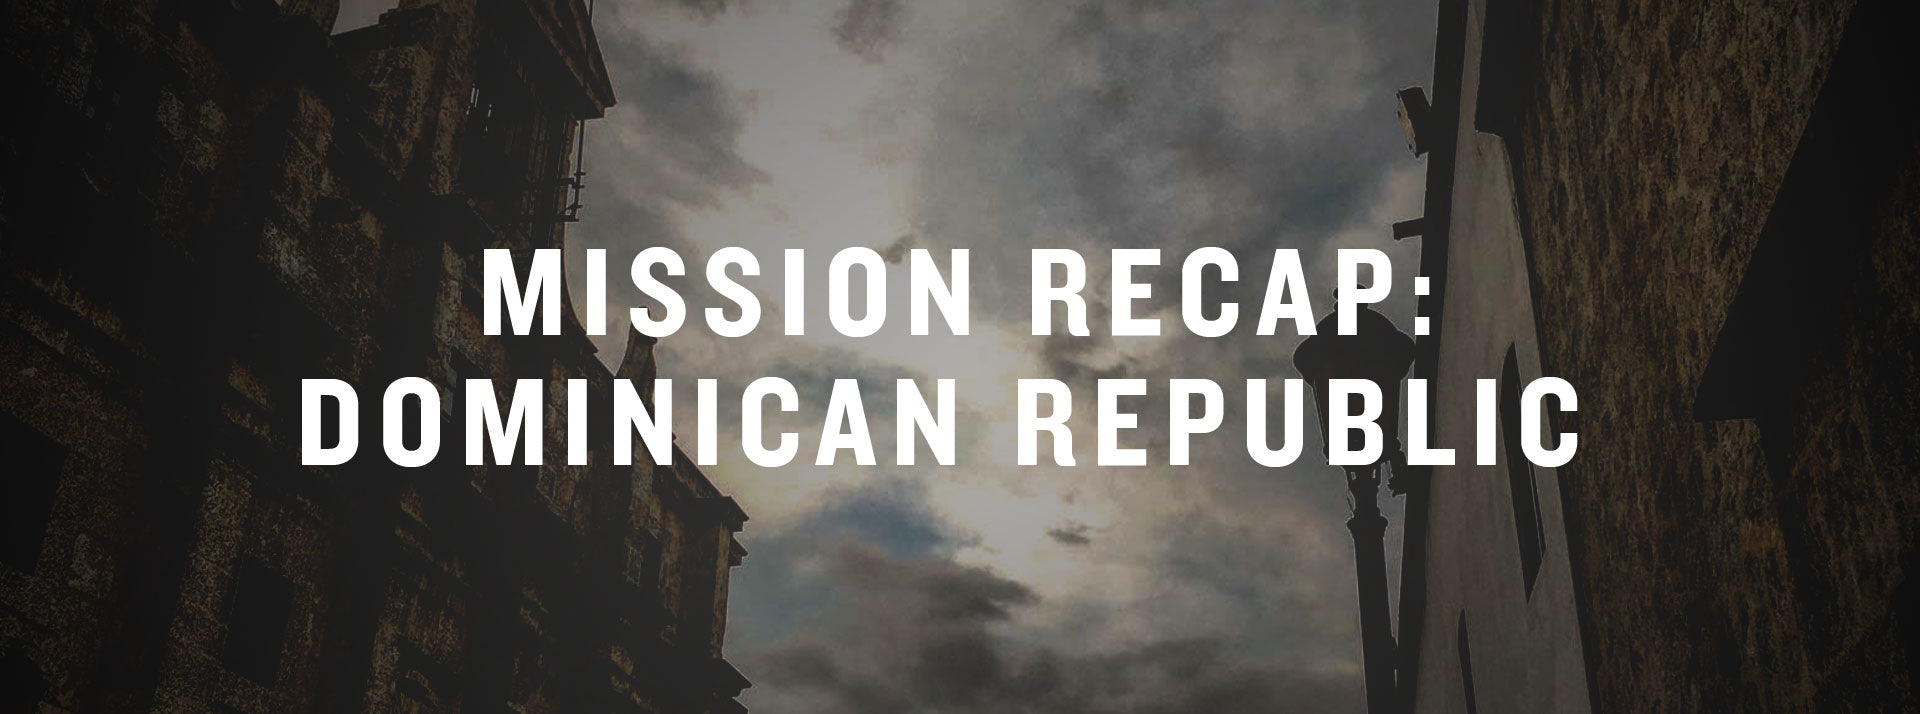 MISSION RECAP: DOMINICAN REPUBLIC LSTN X STARKEY